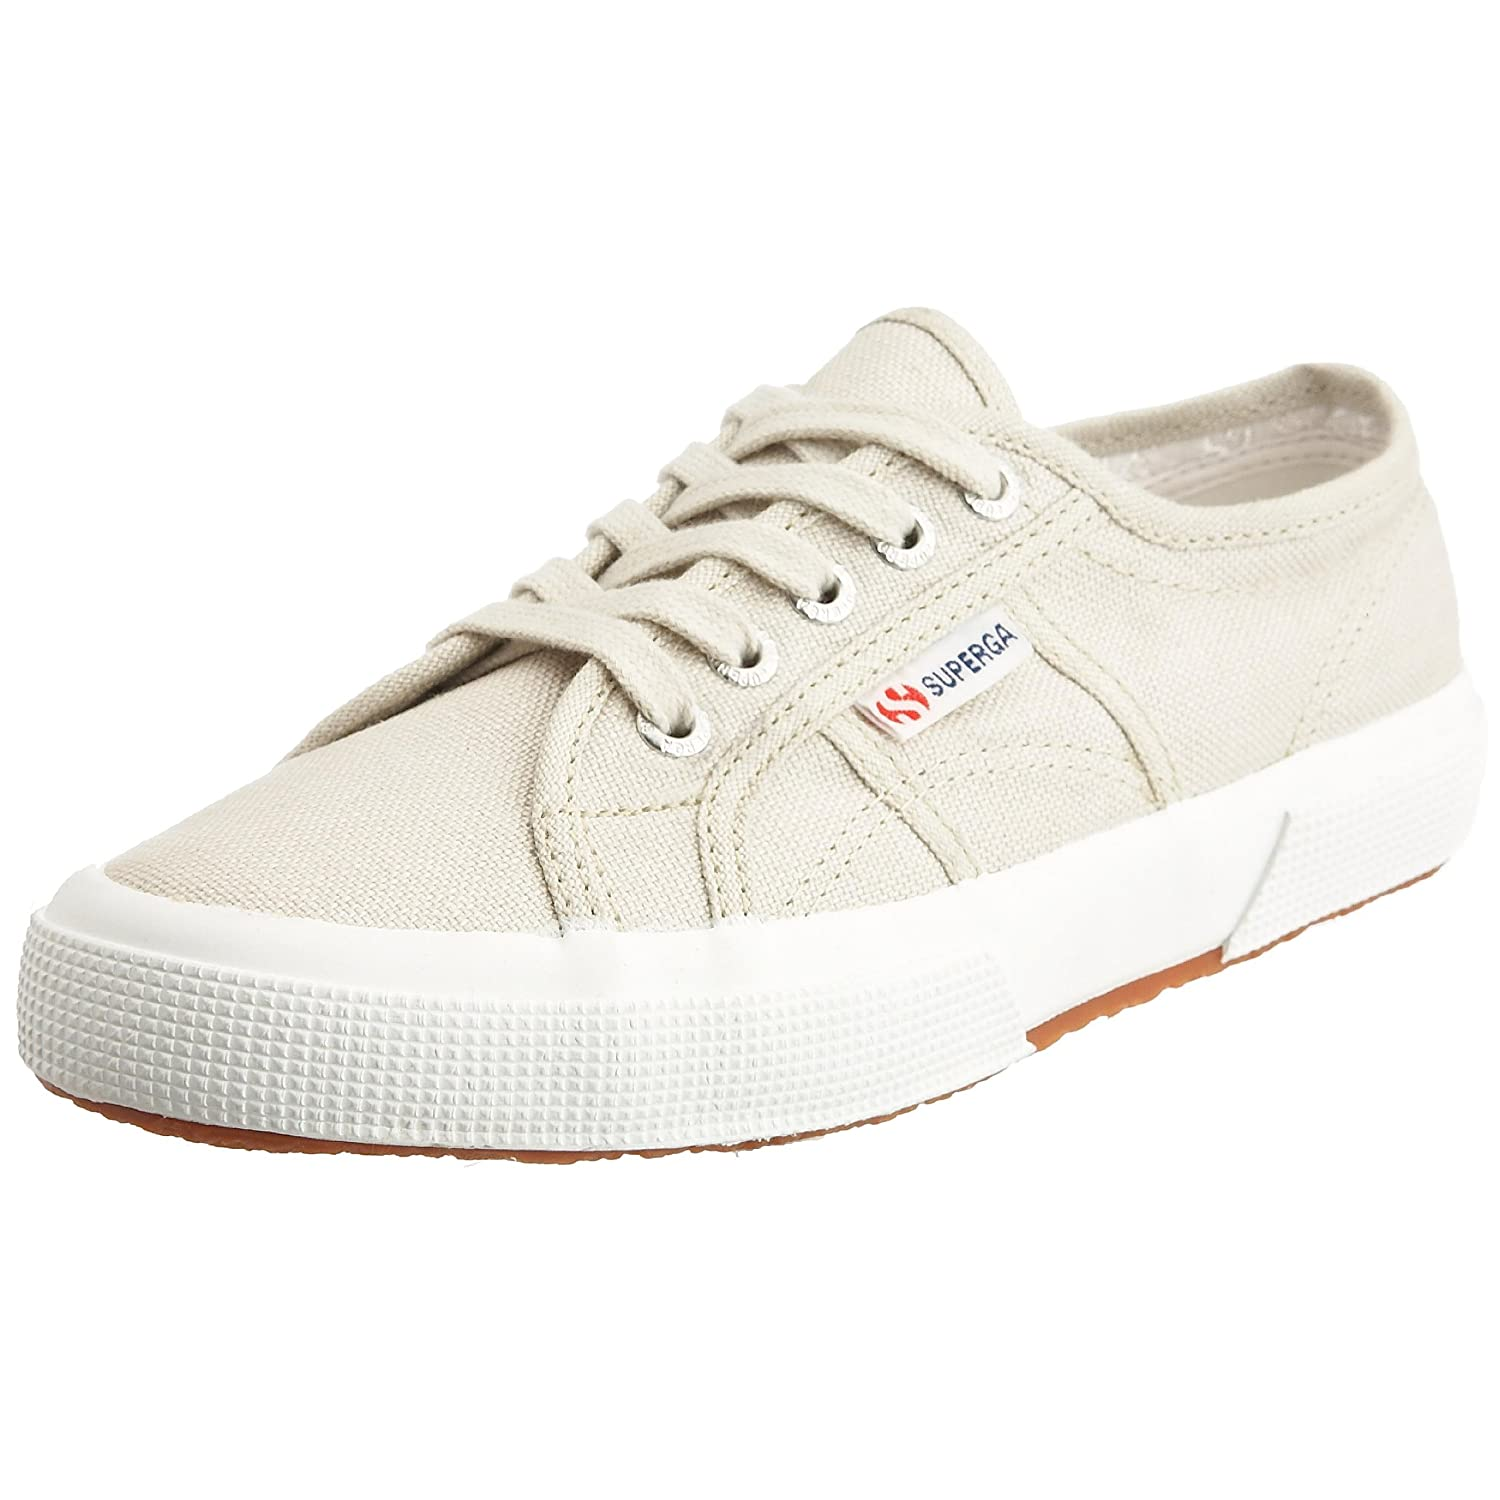 Superga 2750 Cotu Classic, adulte Baskets Baskets mixte adulte Sand 634 Sand b3814c4 - latesttechnology.space